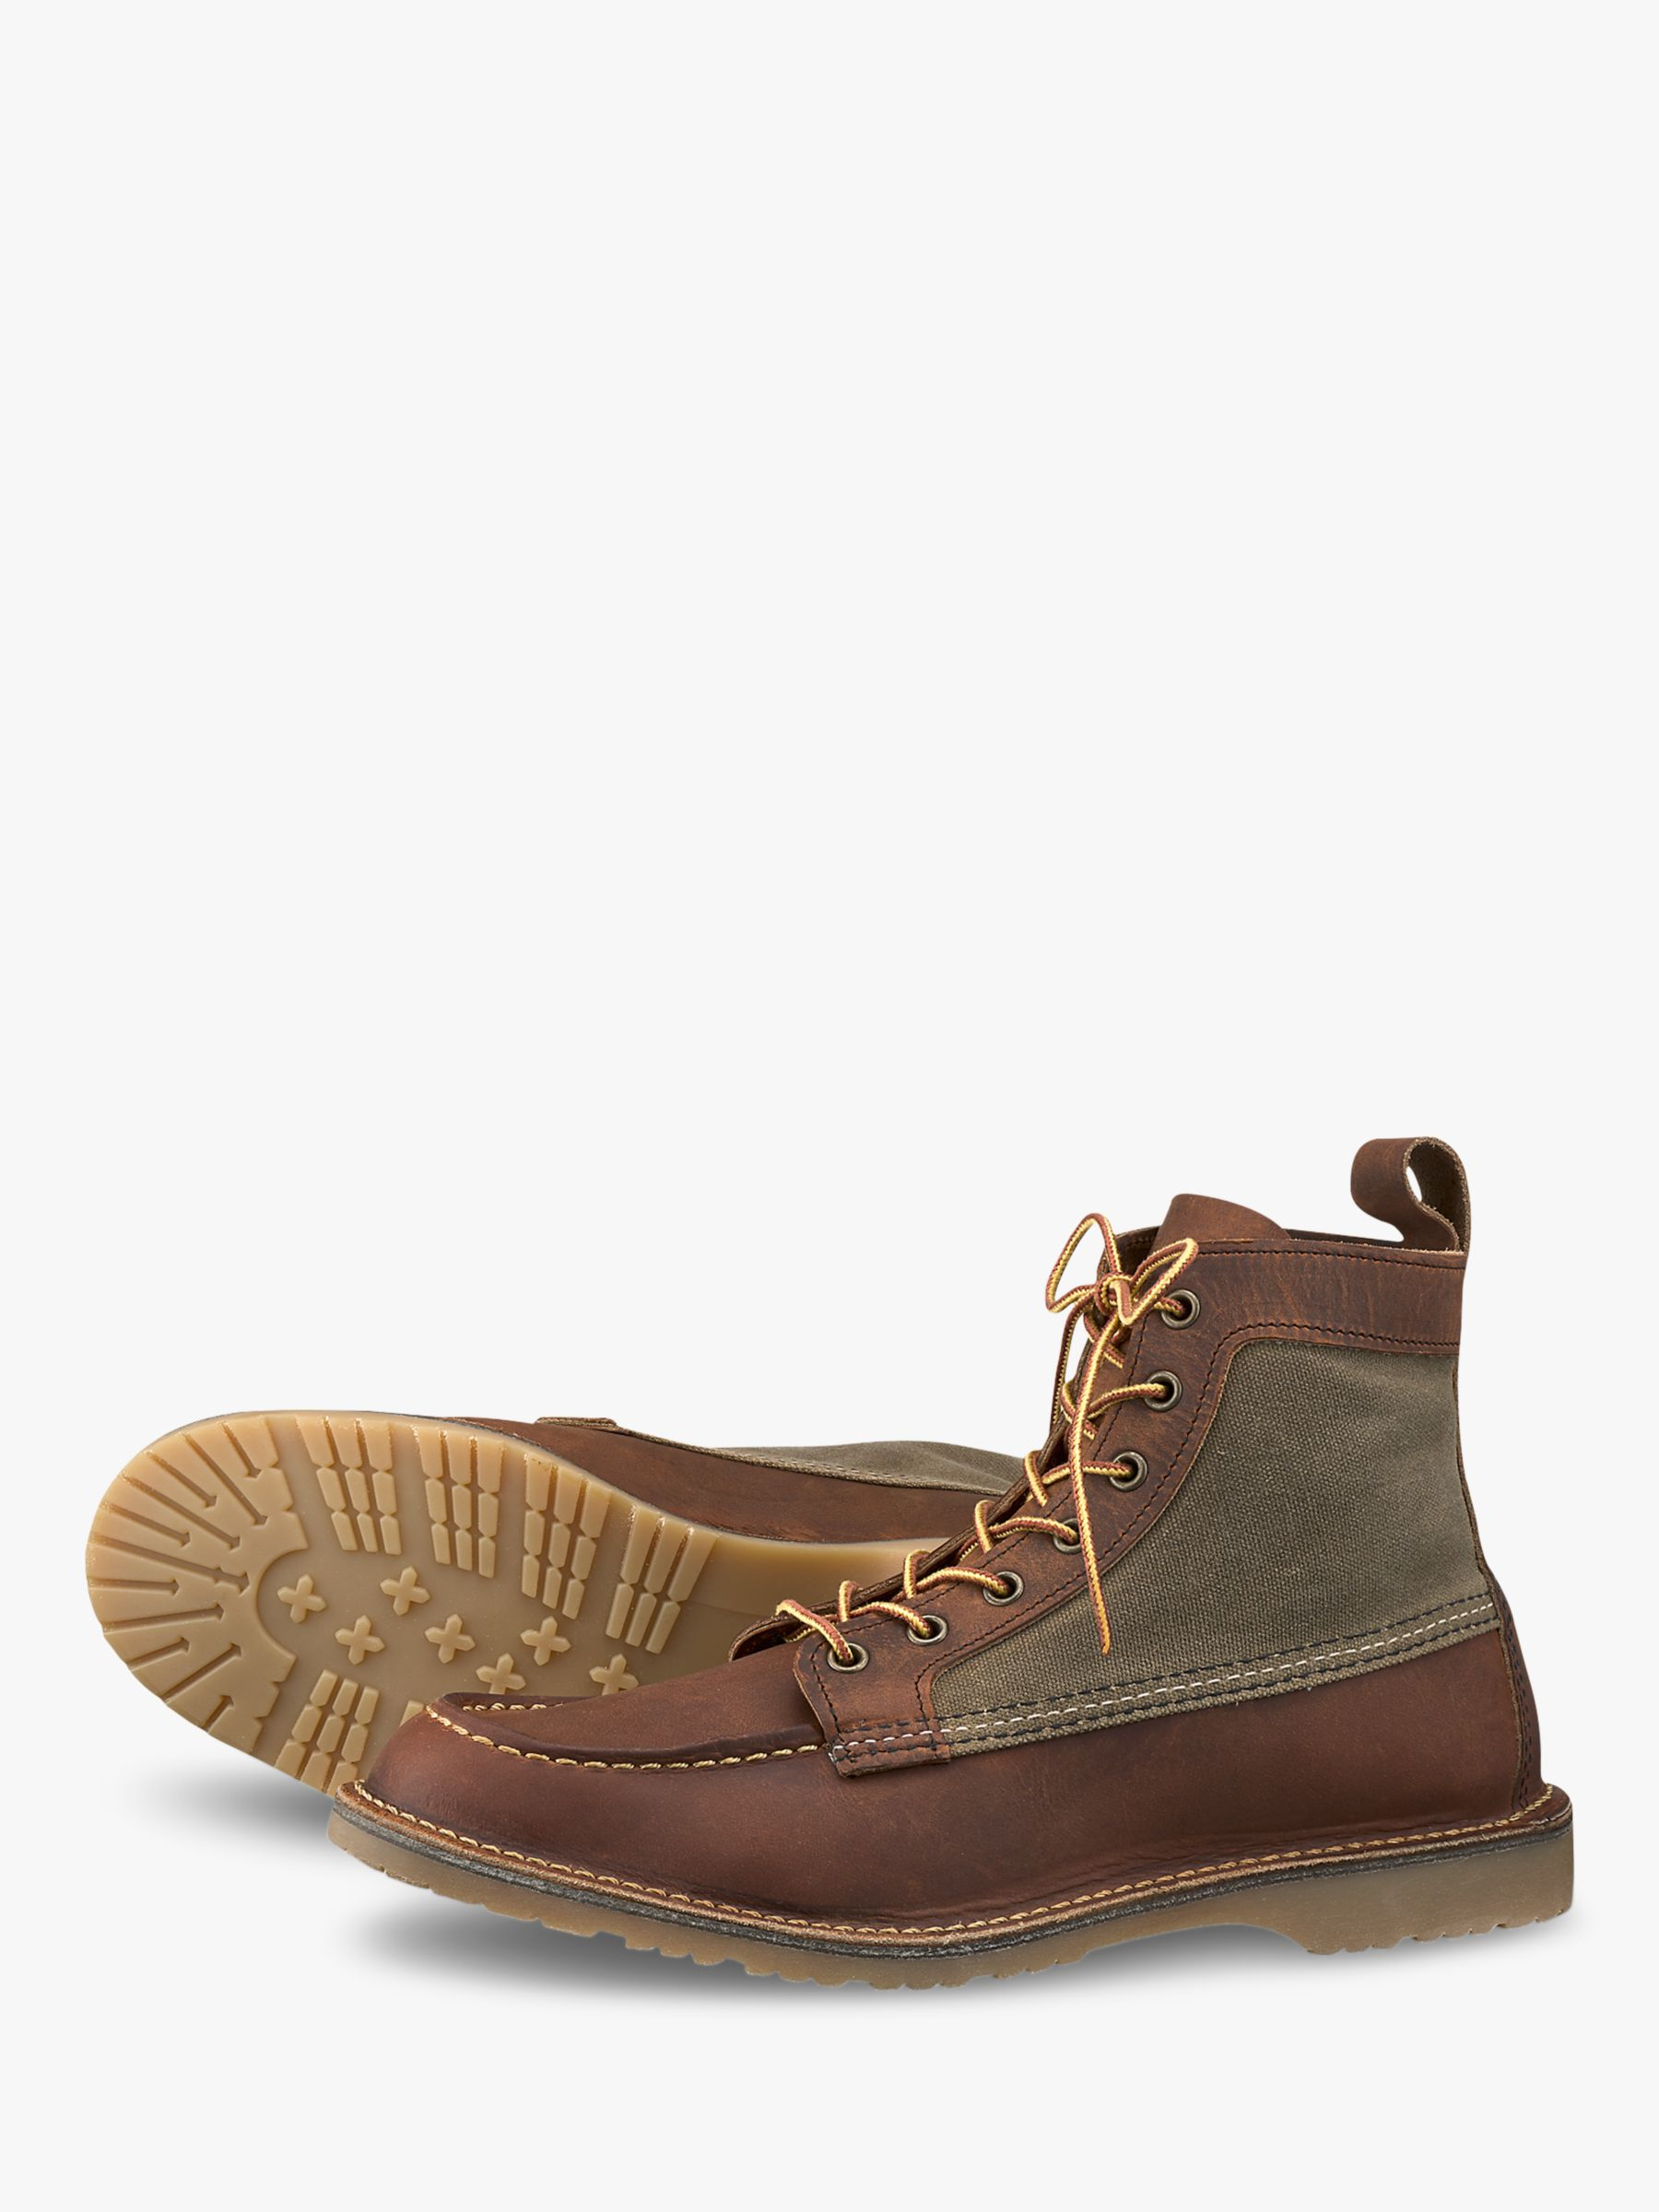 Red Wing Red Wing 3335 Wacouta Boots, Copper